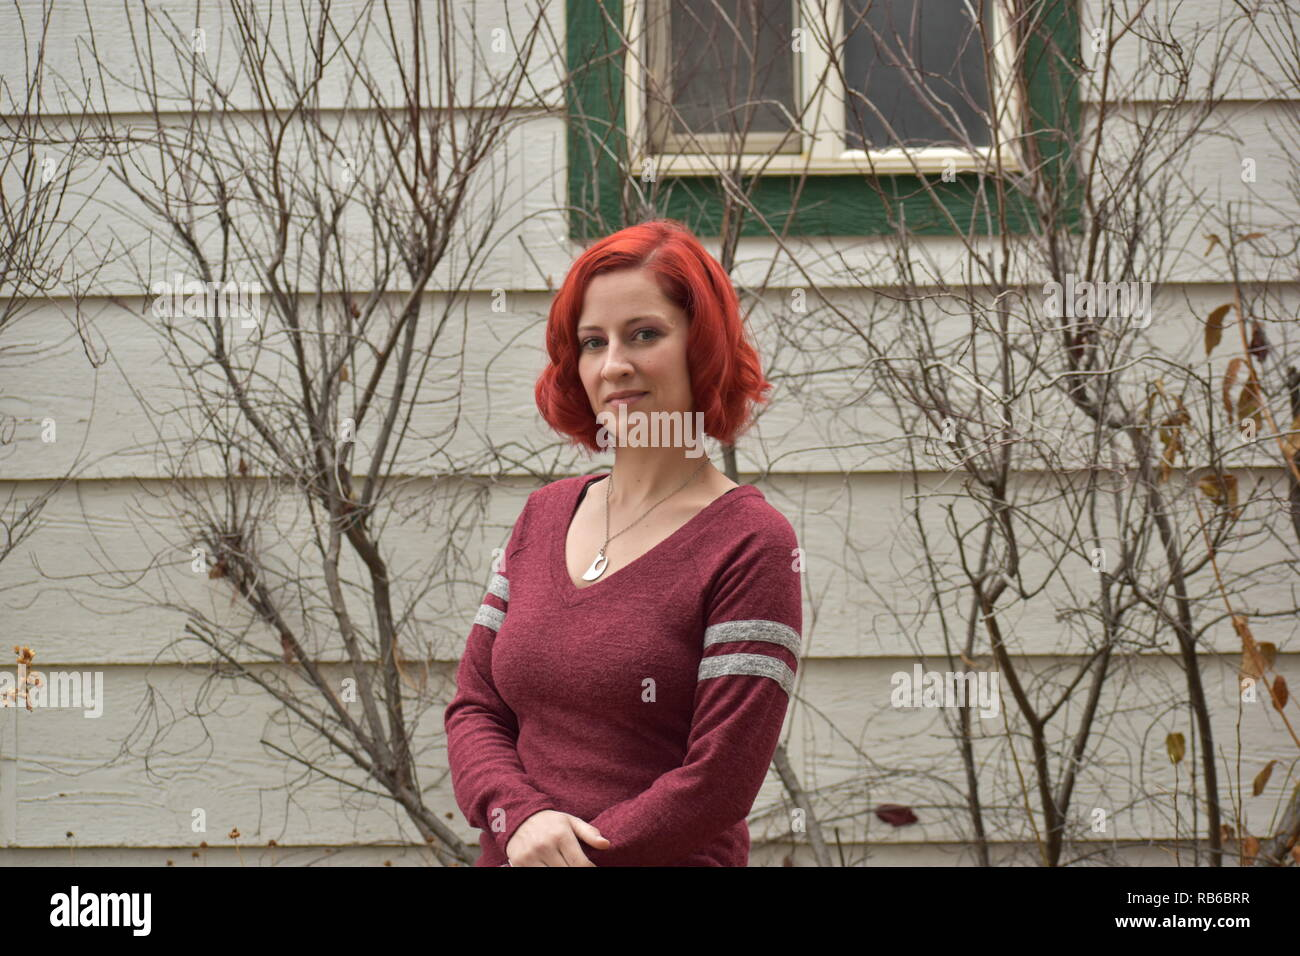 Pretty Red Haired Lady - Stock Image